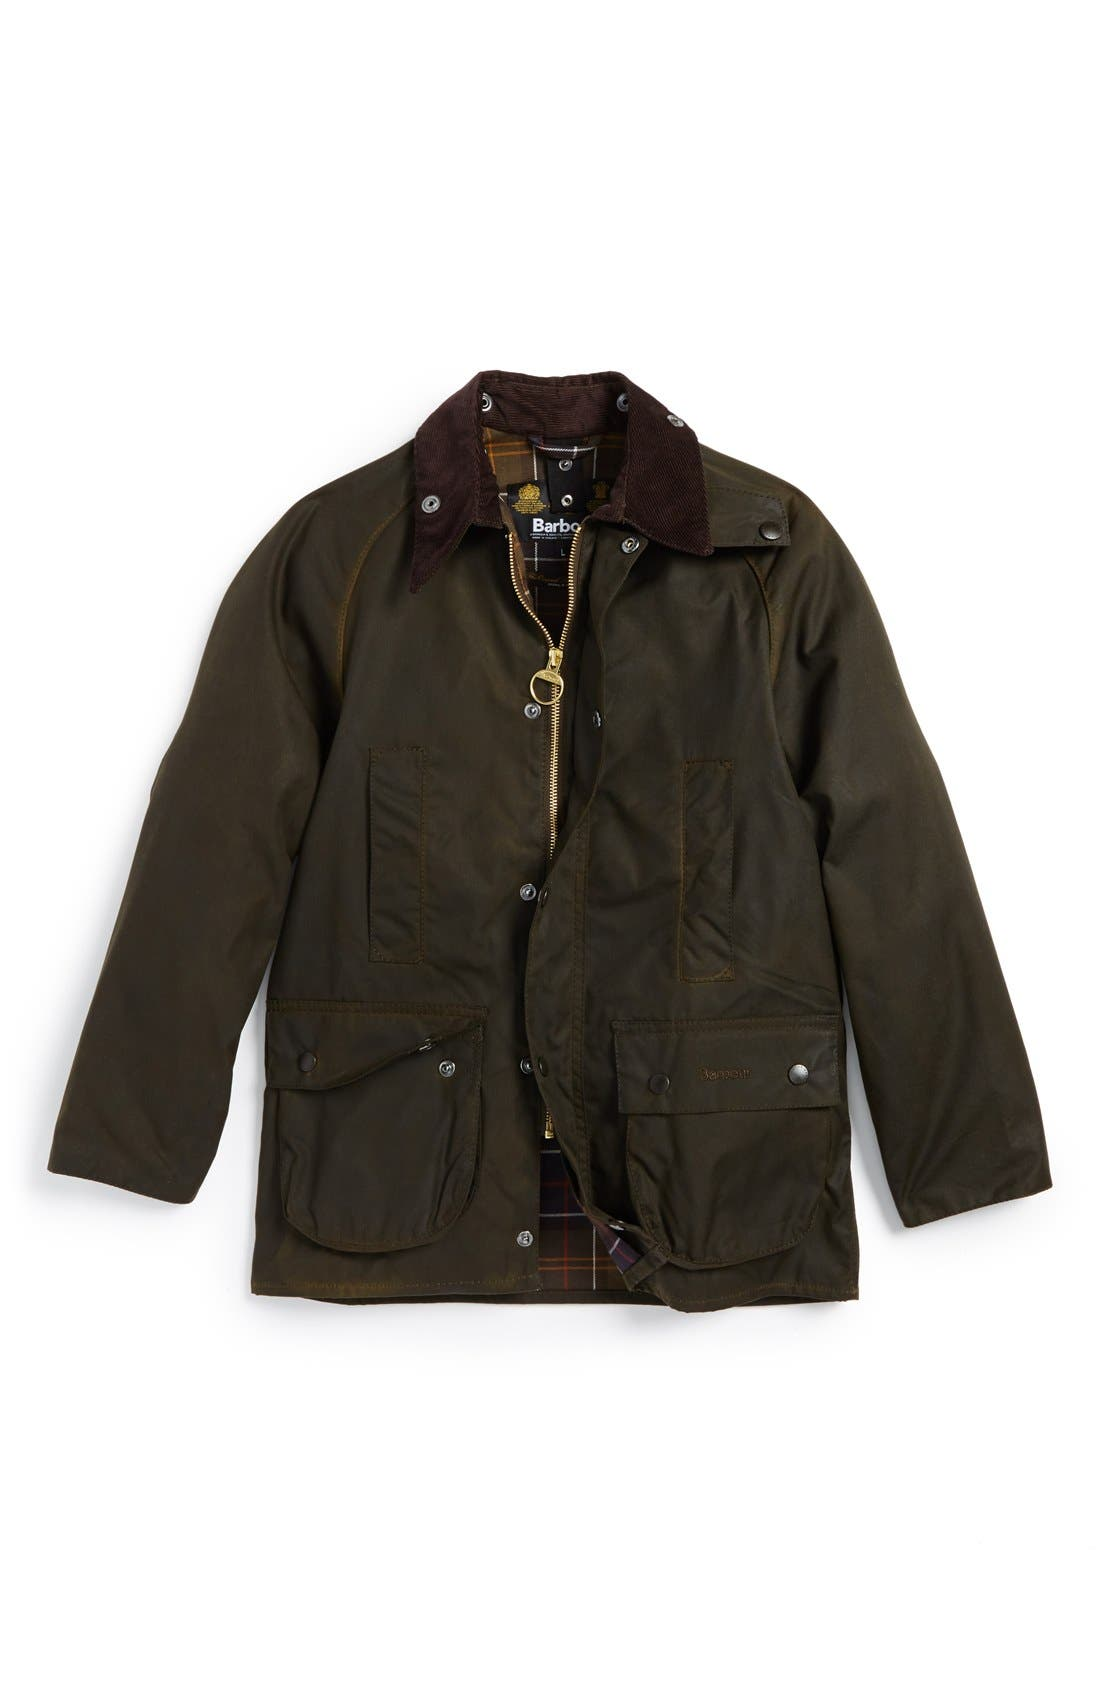 Main Image - Barbour 'Classic Beaufort' Waterproof Waxed Cotton Jacket (Big Boys)